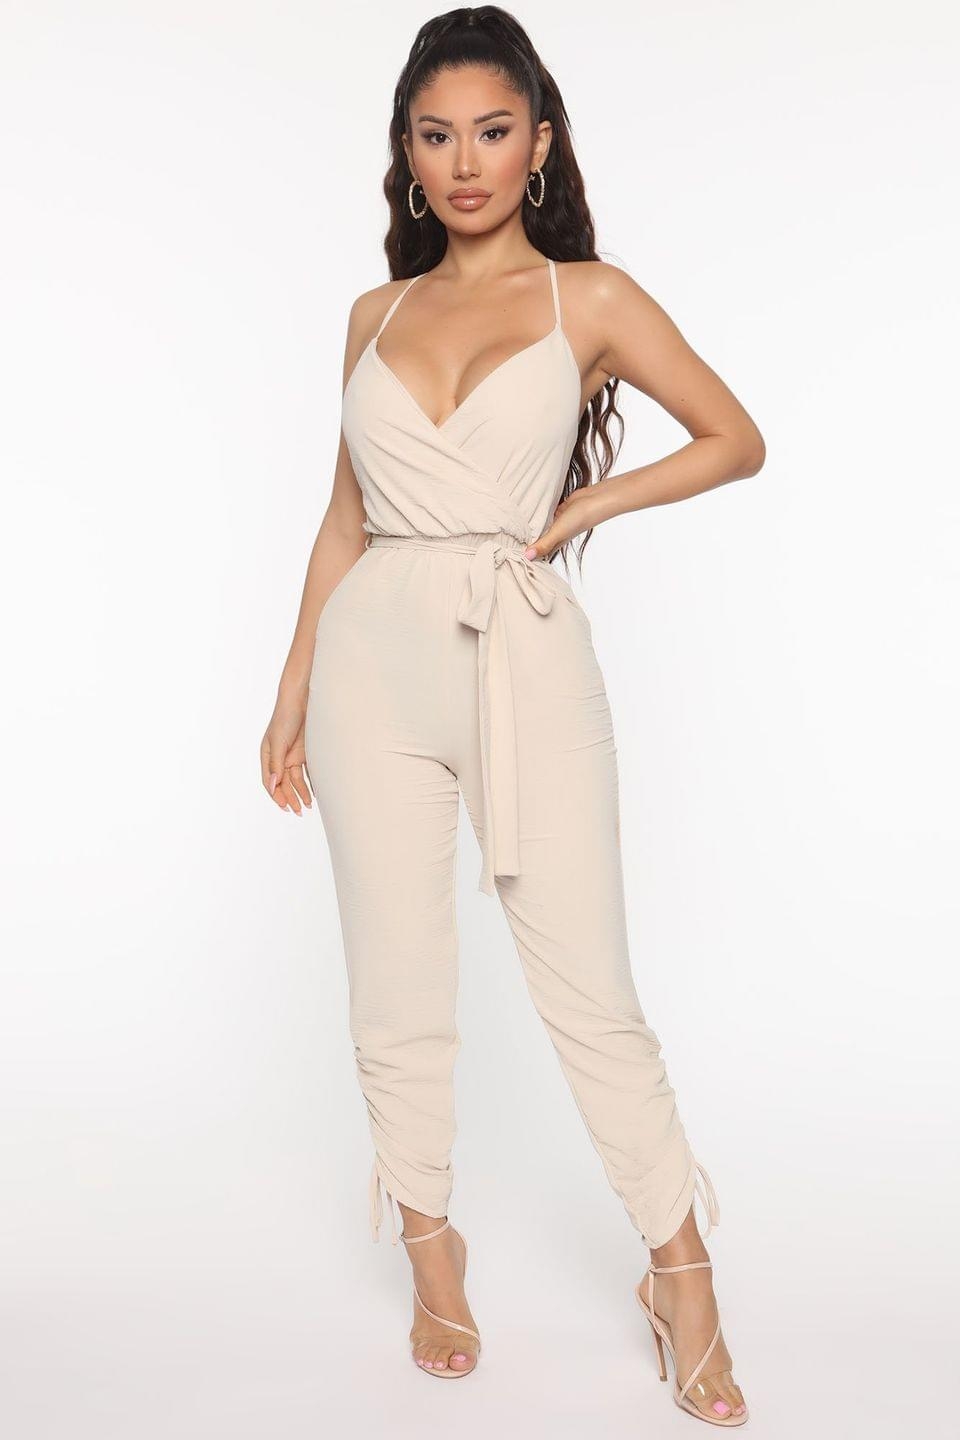 Women's No Other Man Jumpsuit - Oatmeal